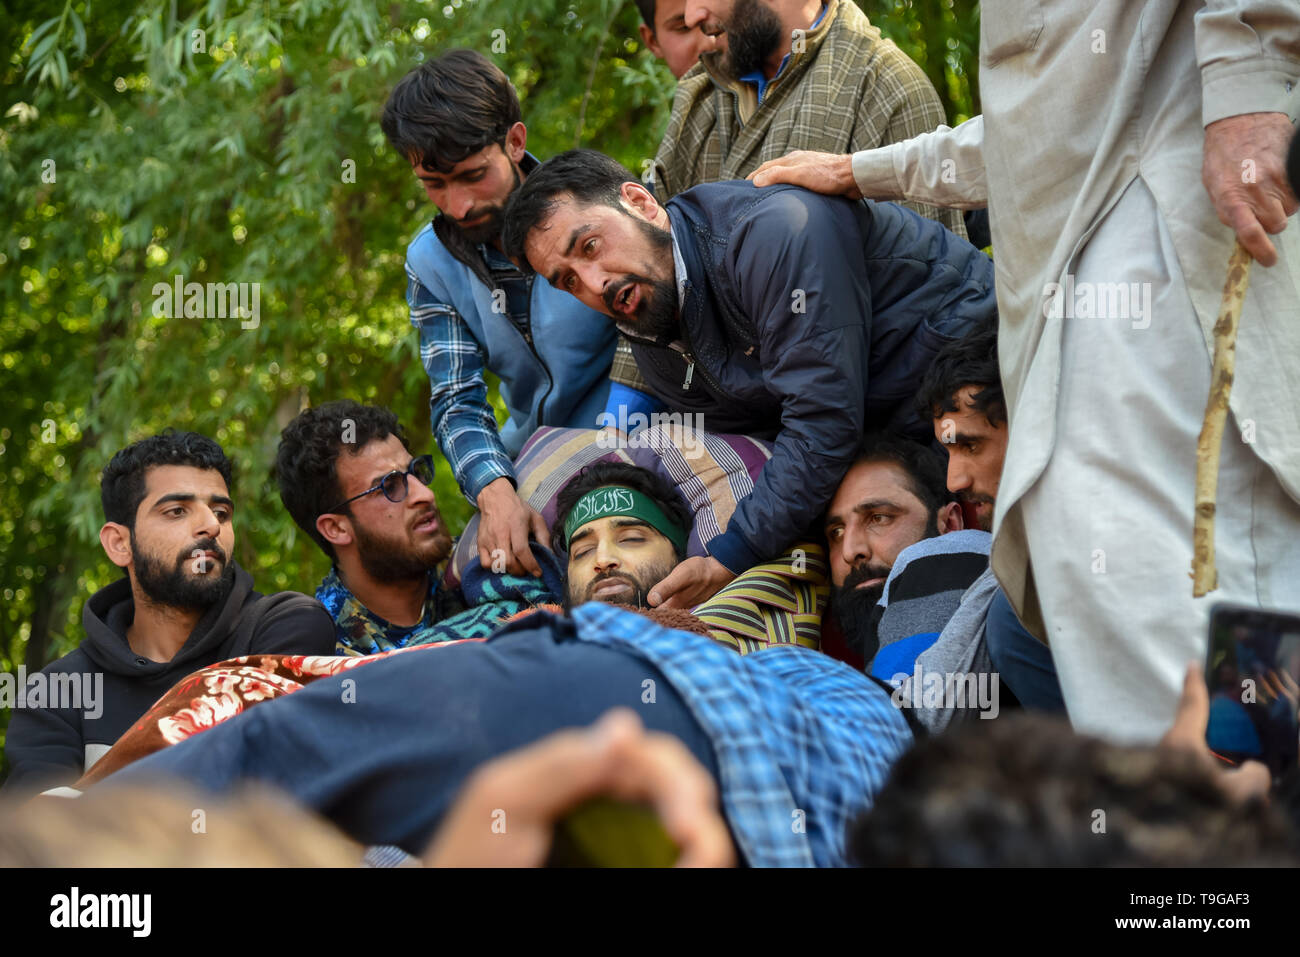 (EDITORS NOTE: Image depicts death) Relatives of Kashmiri Rebel Showkat Ahmed are seen gathered around his dead body during the funeral procession in Pulwama, South of Srinagar. Thousands attended the funeral ceremony of slain Showkat Ahmed Dar at his residence in Panzgam Pulwama. Showkat was among the three Kashmiri Rebels killed in a gunfight in Pulwama. - Stock Image